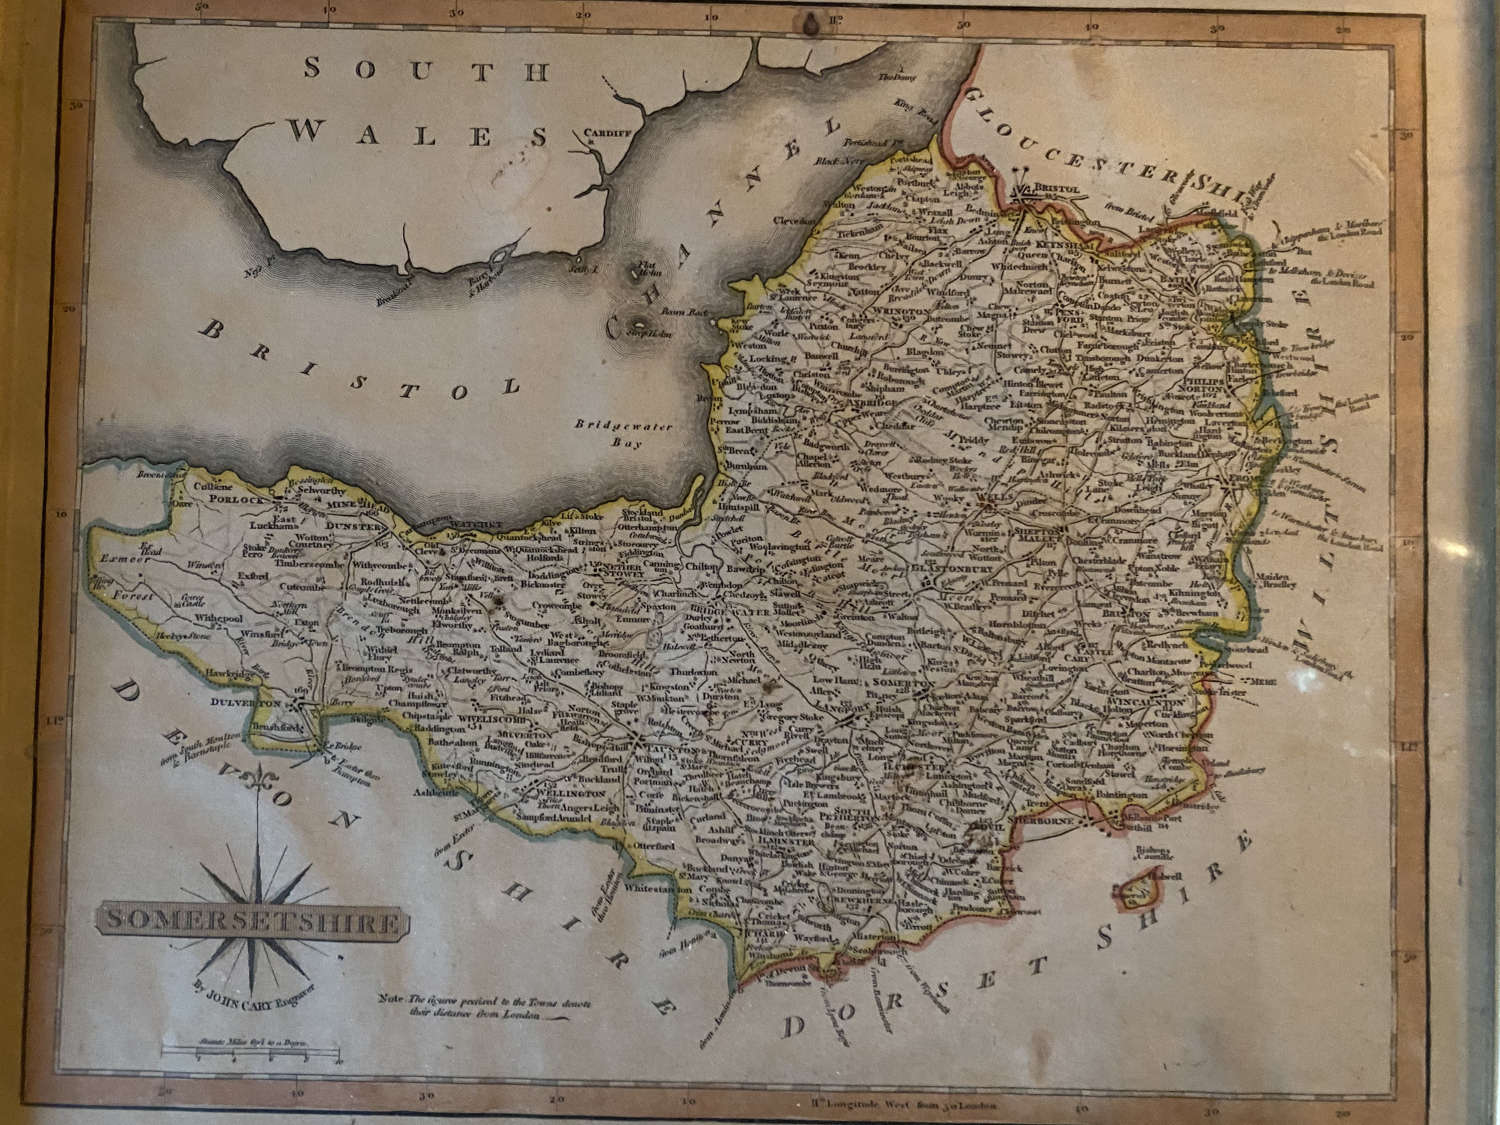 Print of a map of Somerset